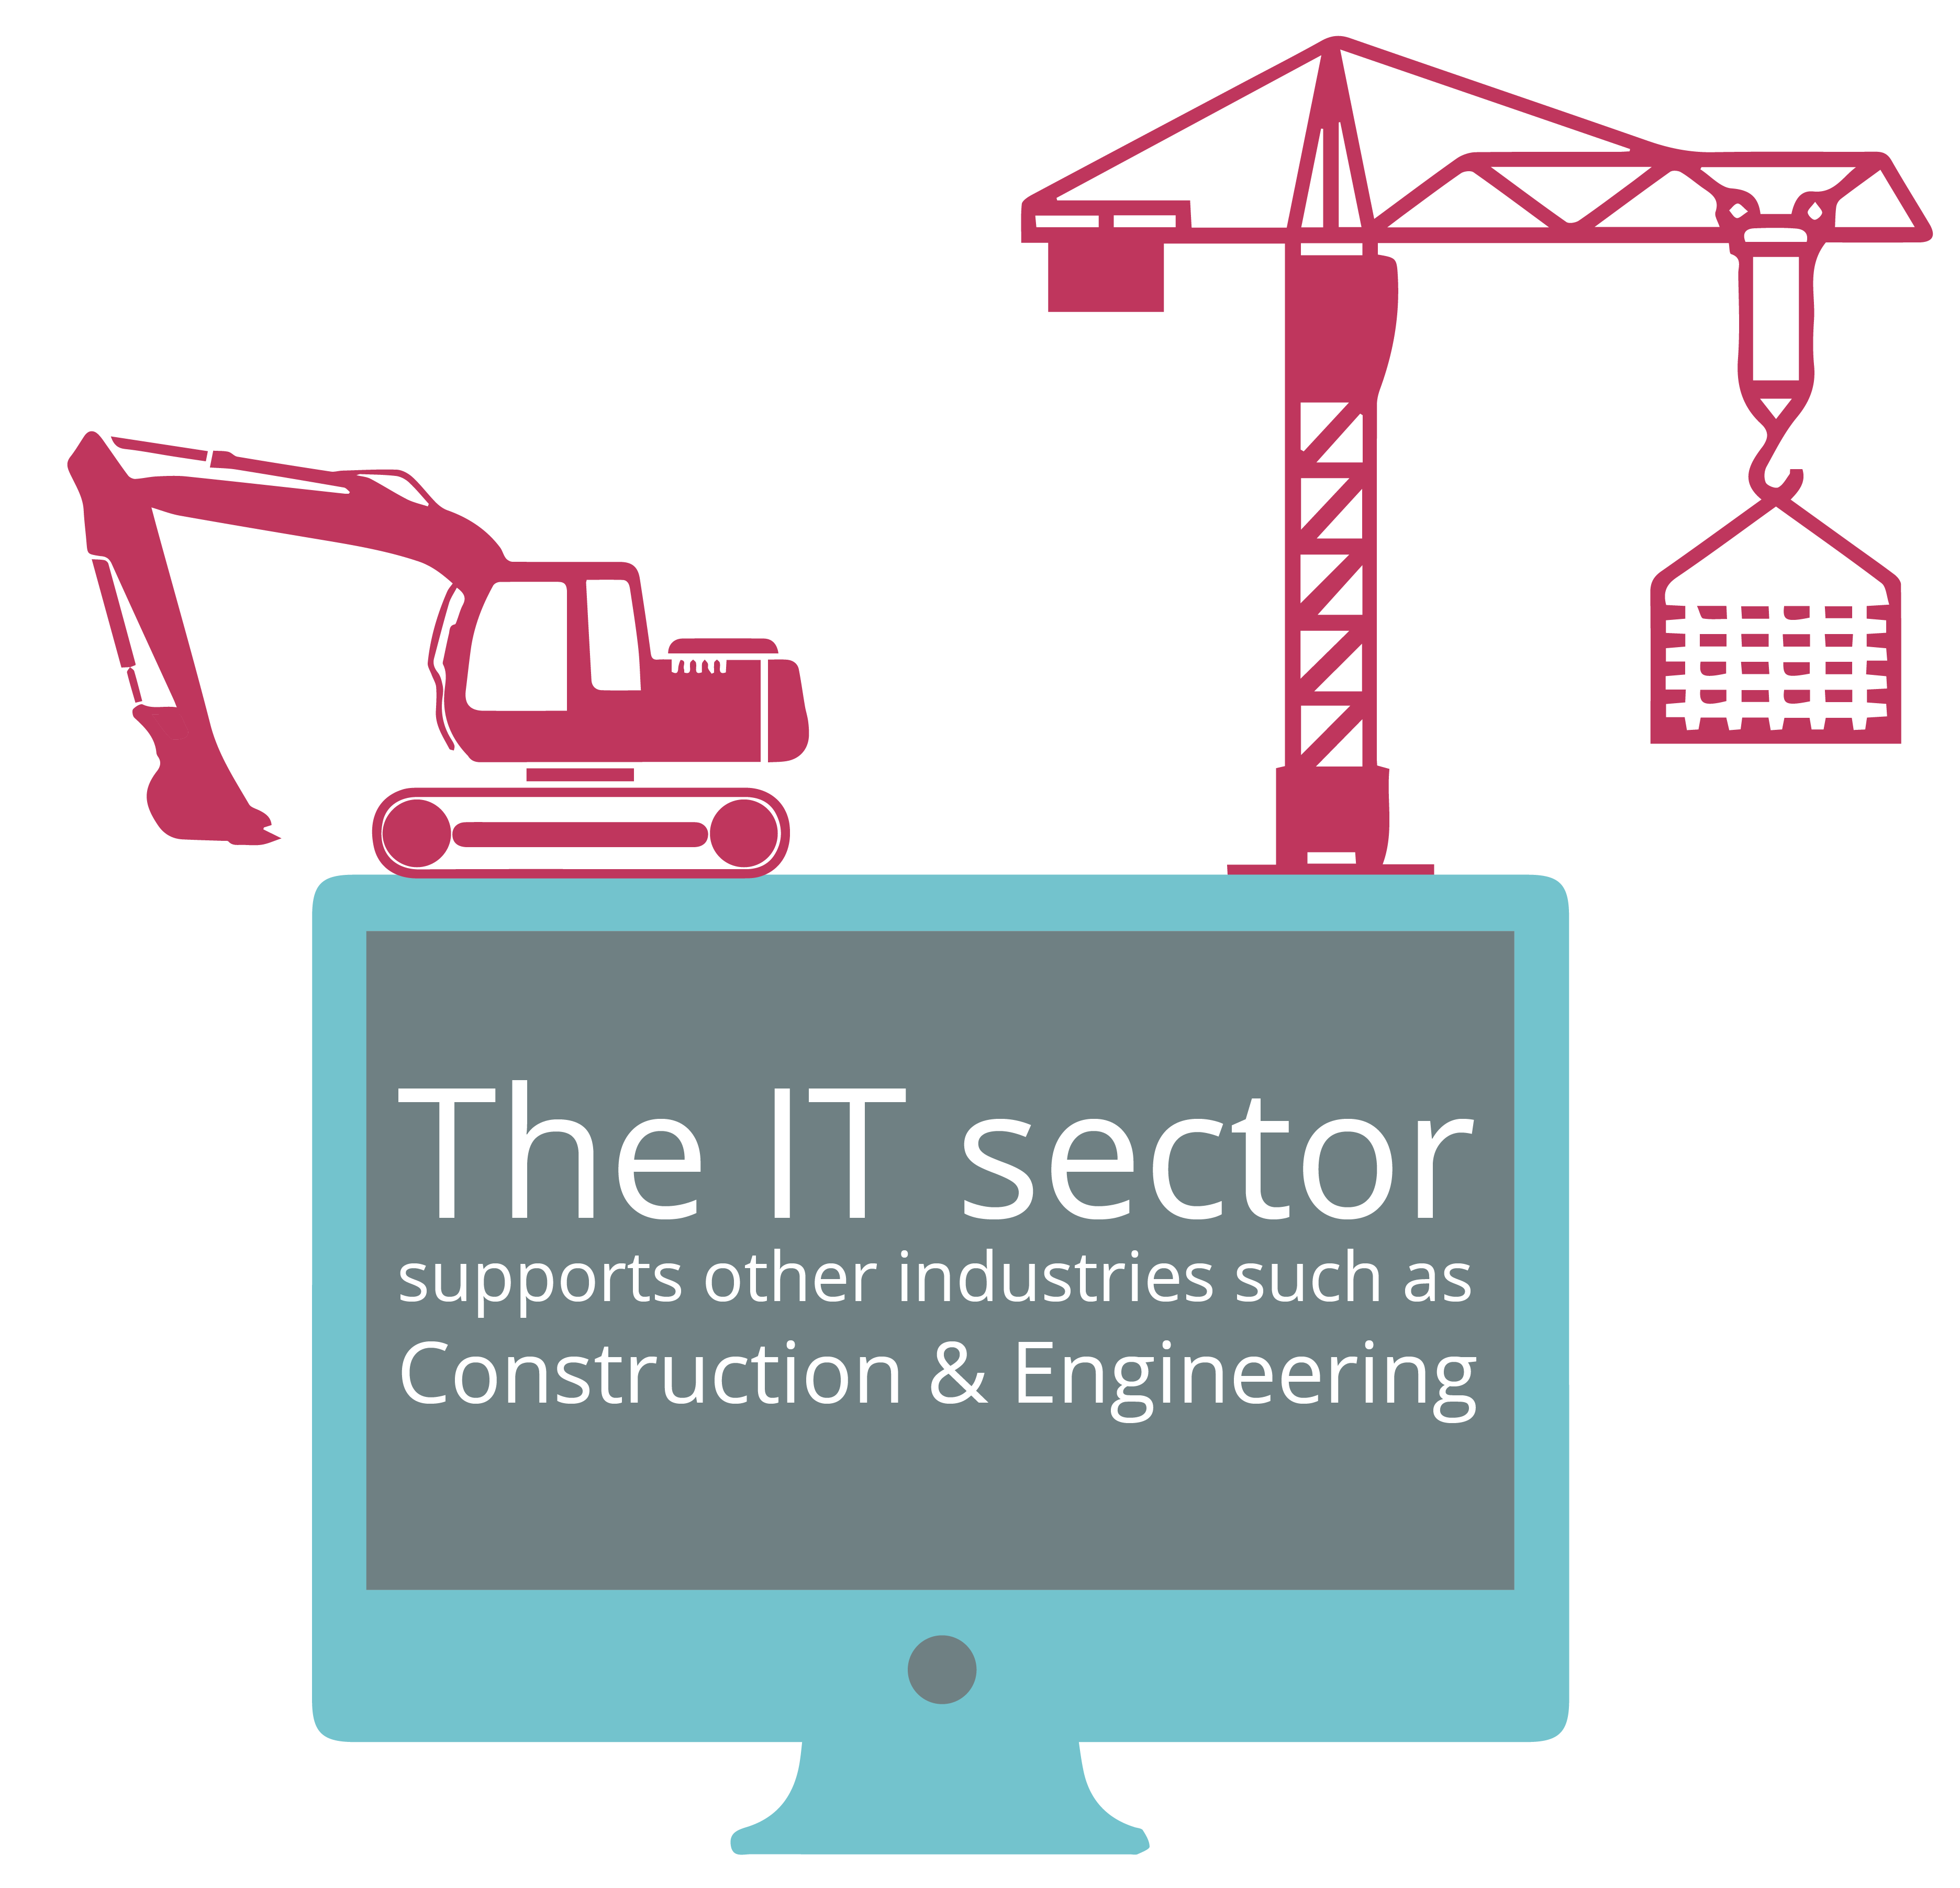 The IT sector supports other industries such as Construction and Engineering